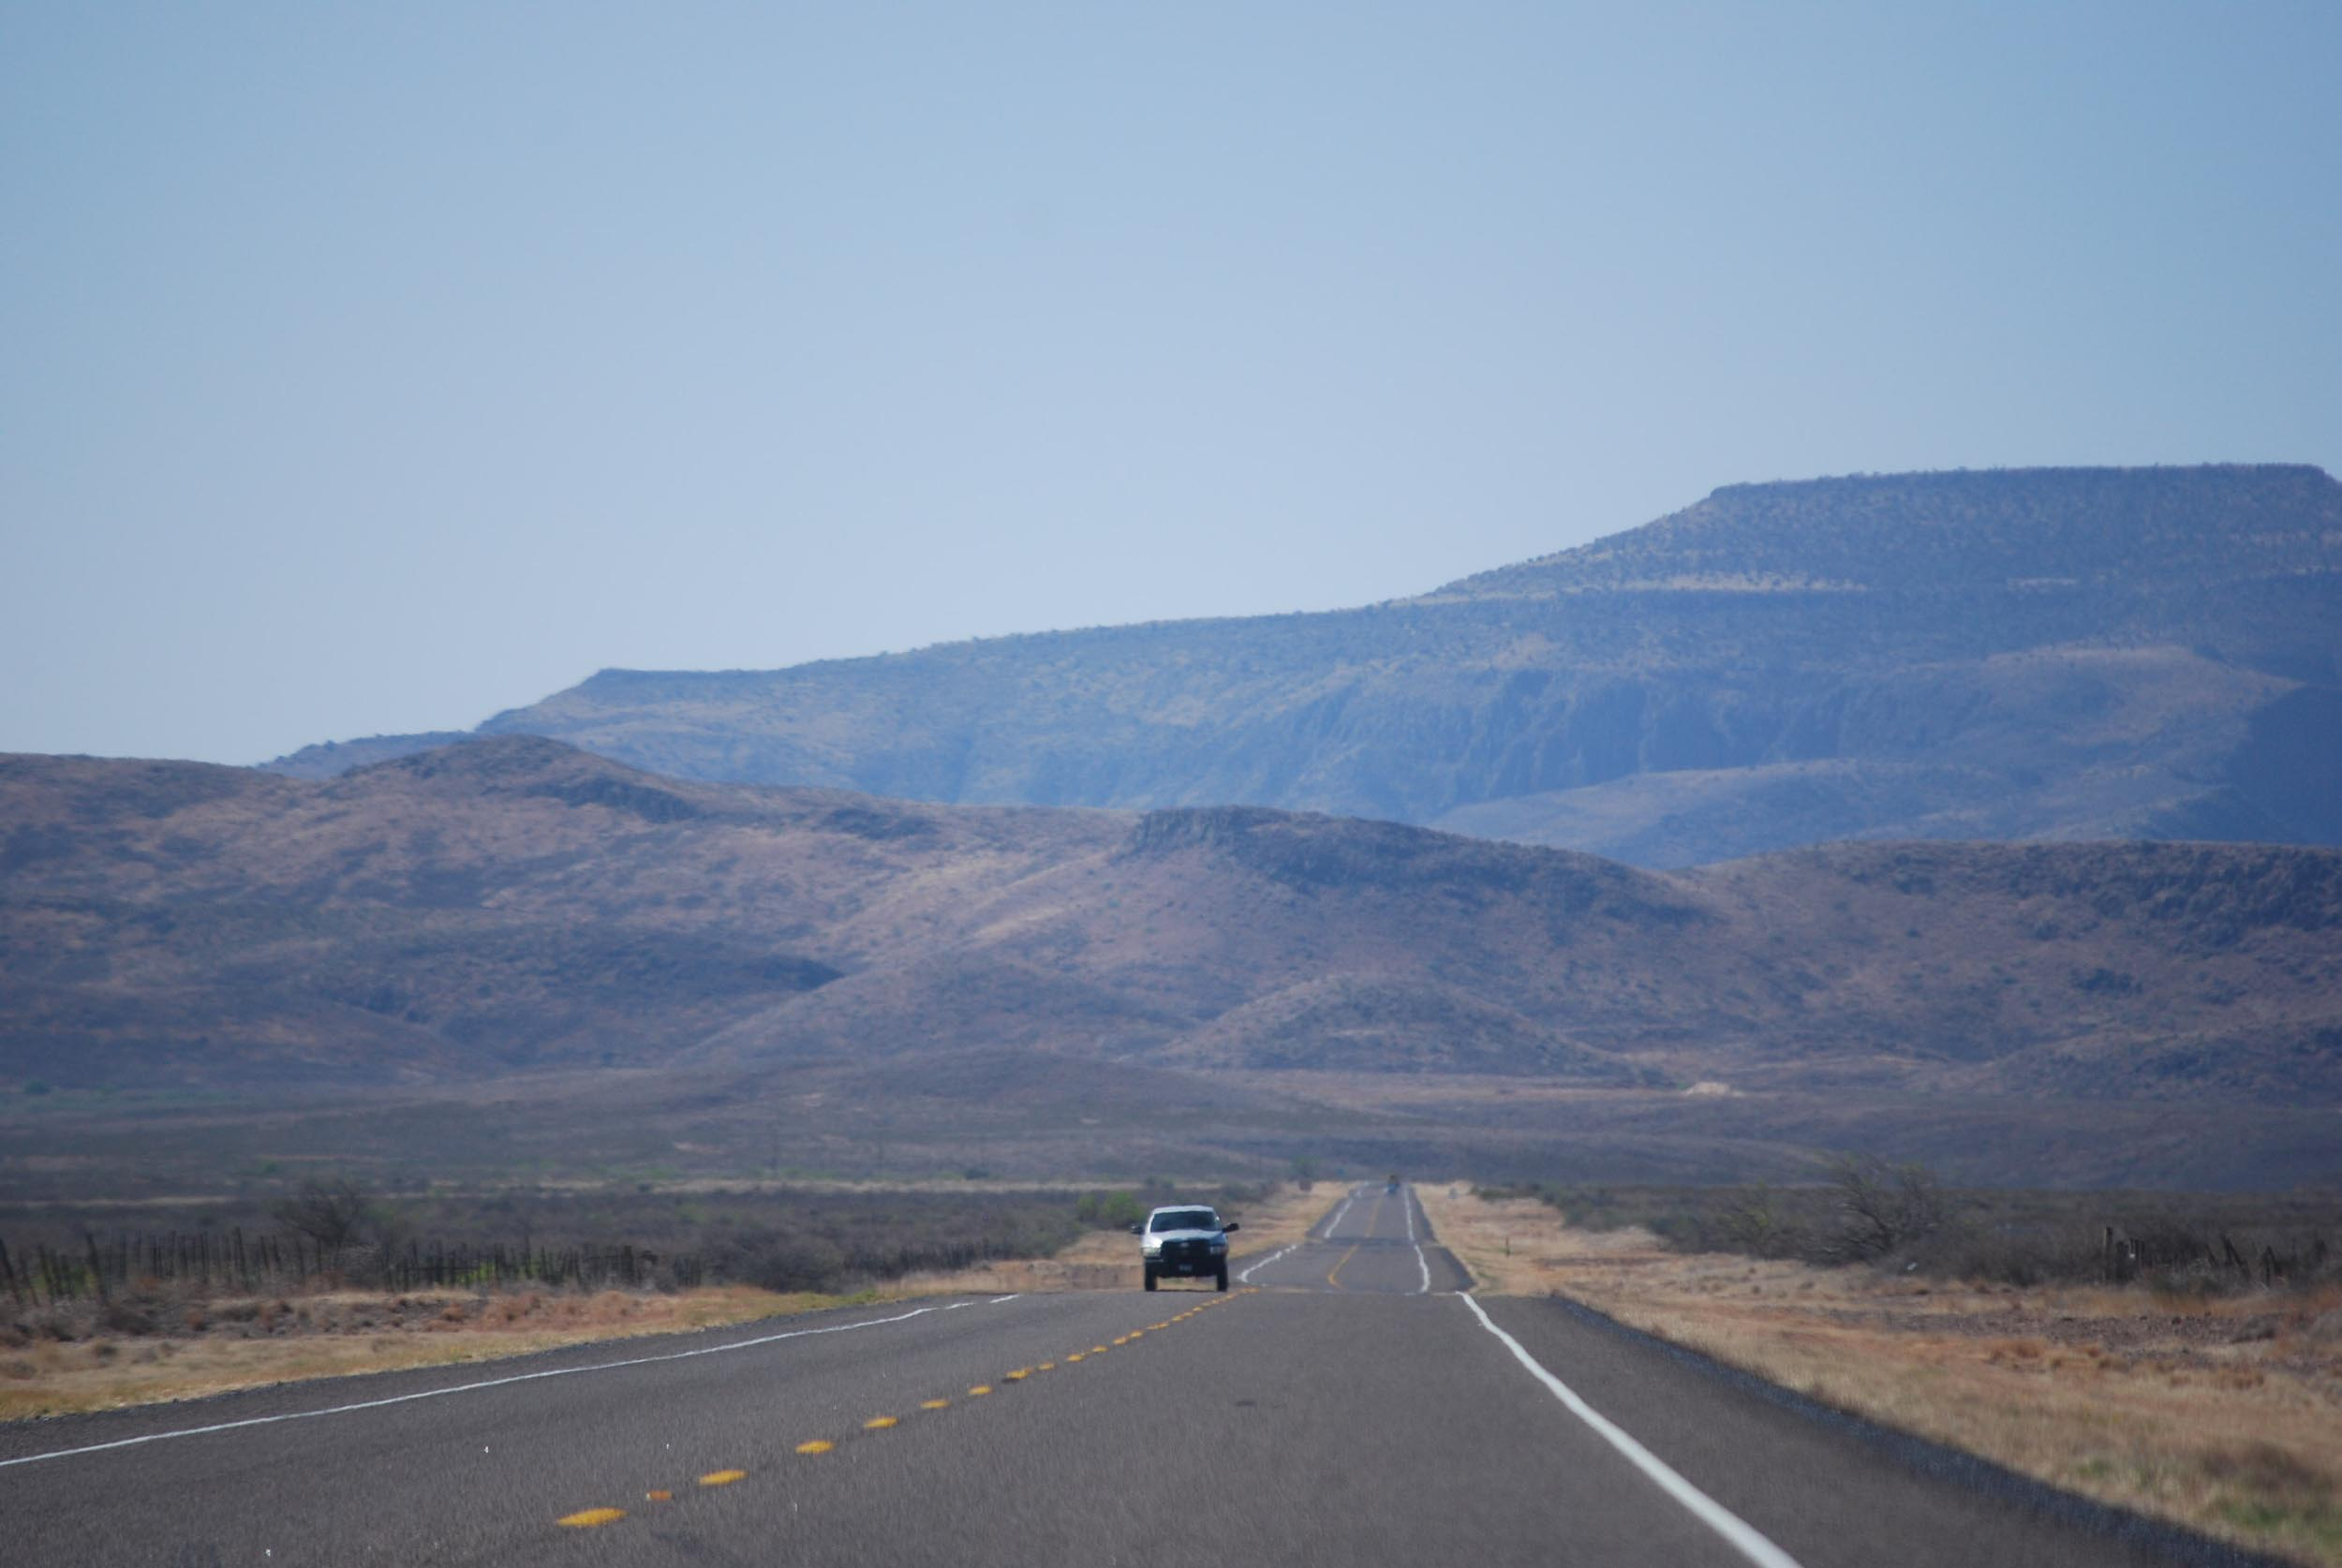 Carousel photo for Zach Doty's digital marketing website. Photo is of a highway in Texas' Davis Mountains.